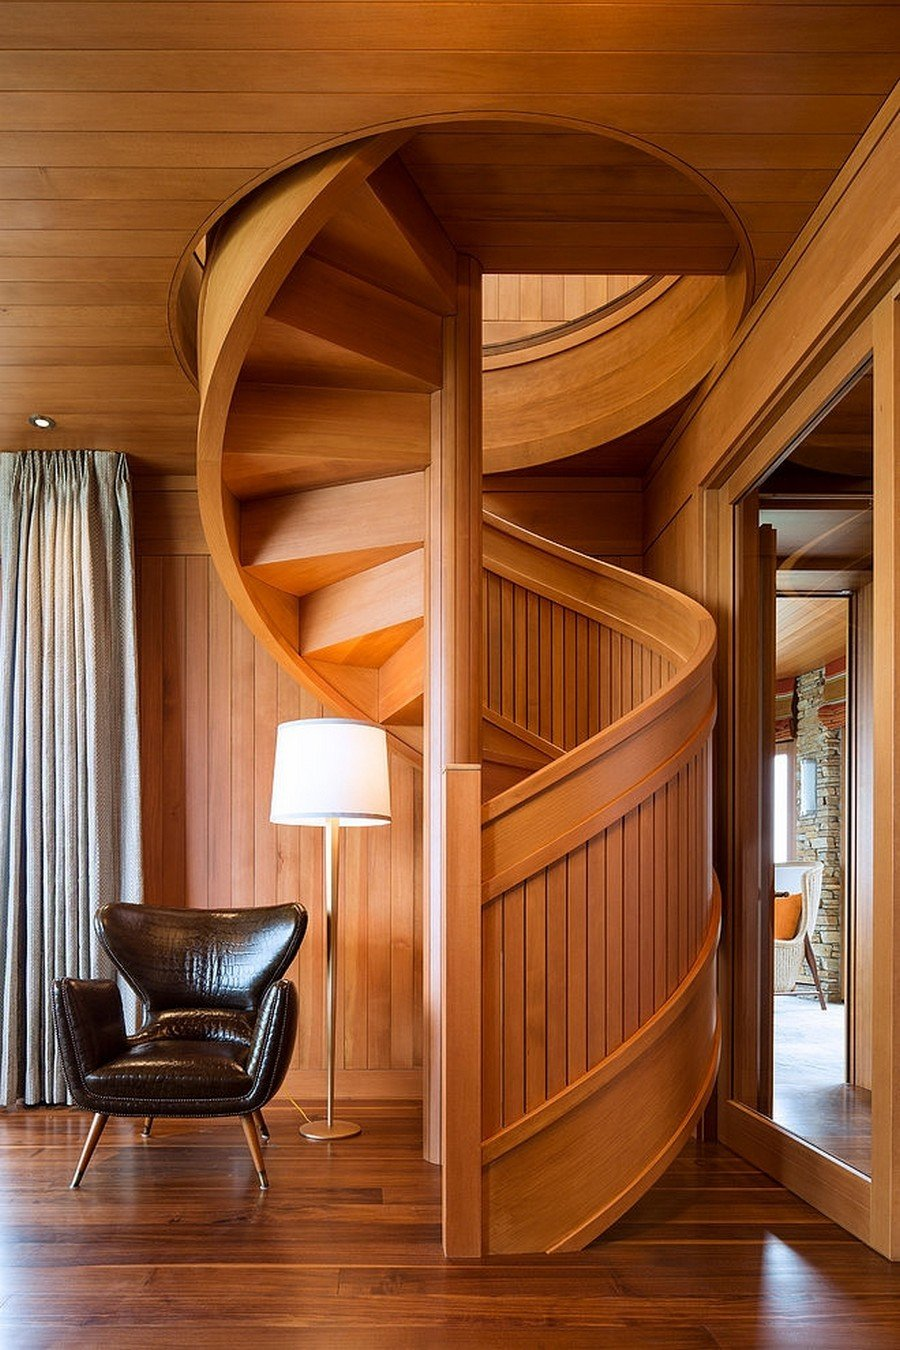 Flowing Spiral Wood Staircase Work Art Outdoor Wooden Spiral Staircase